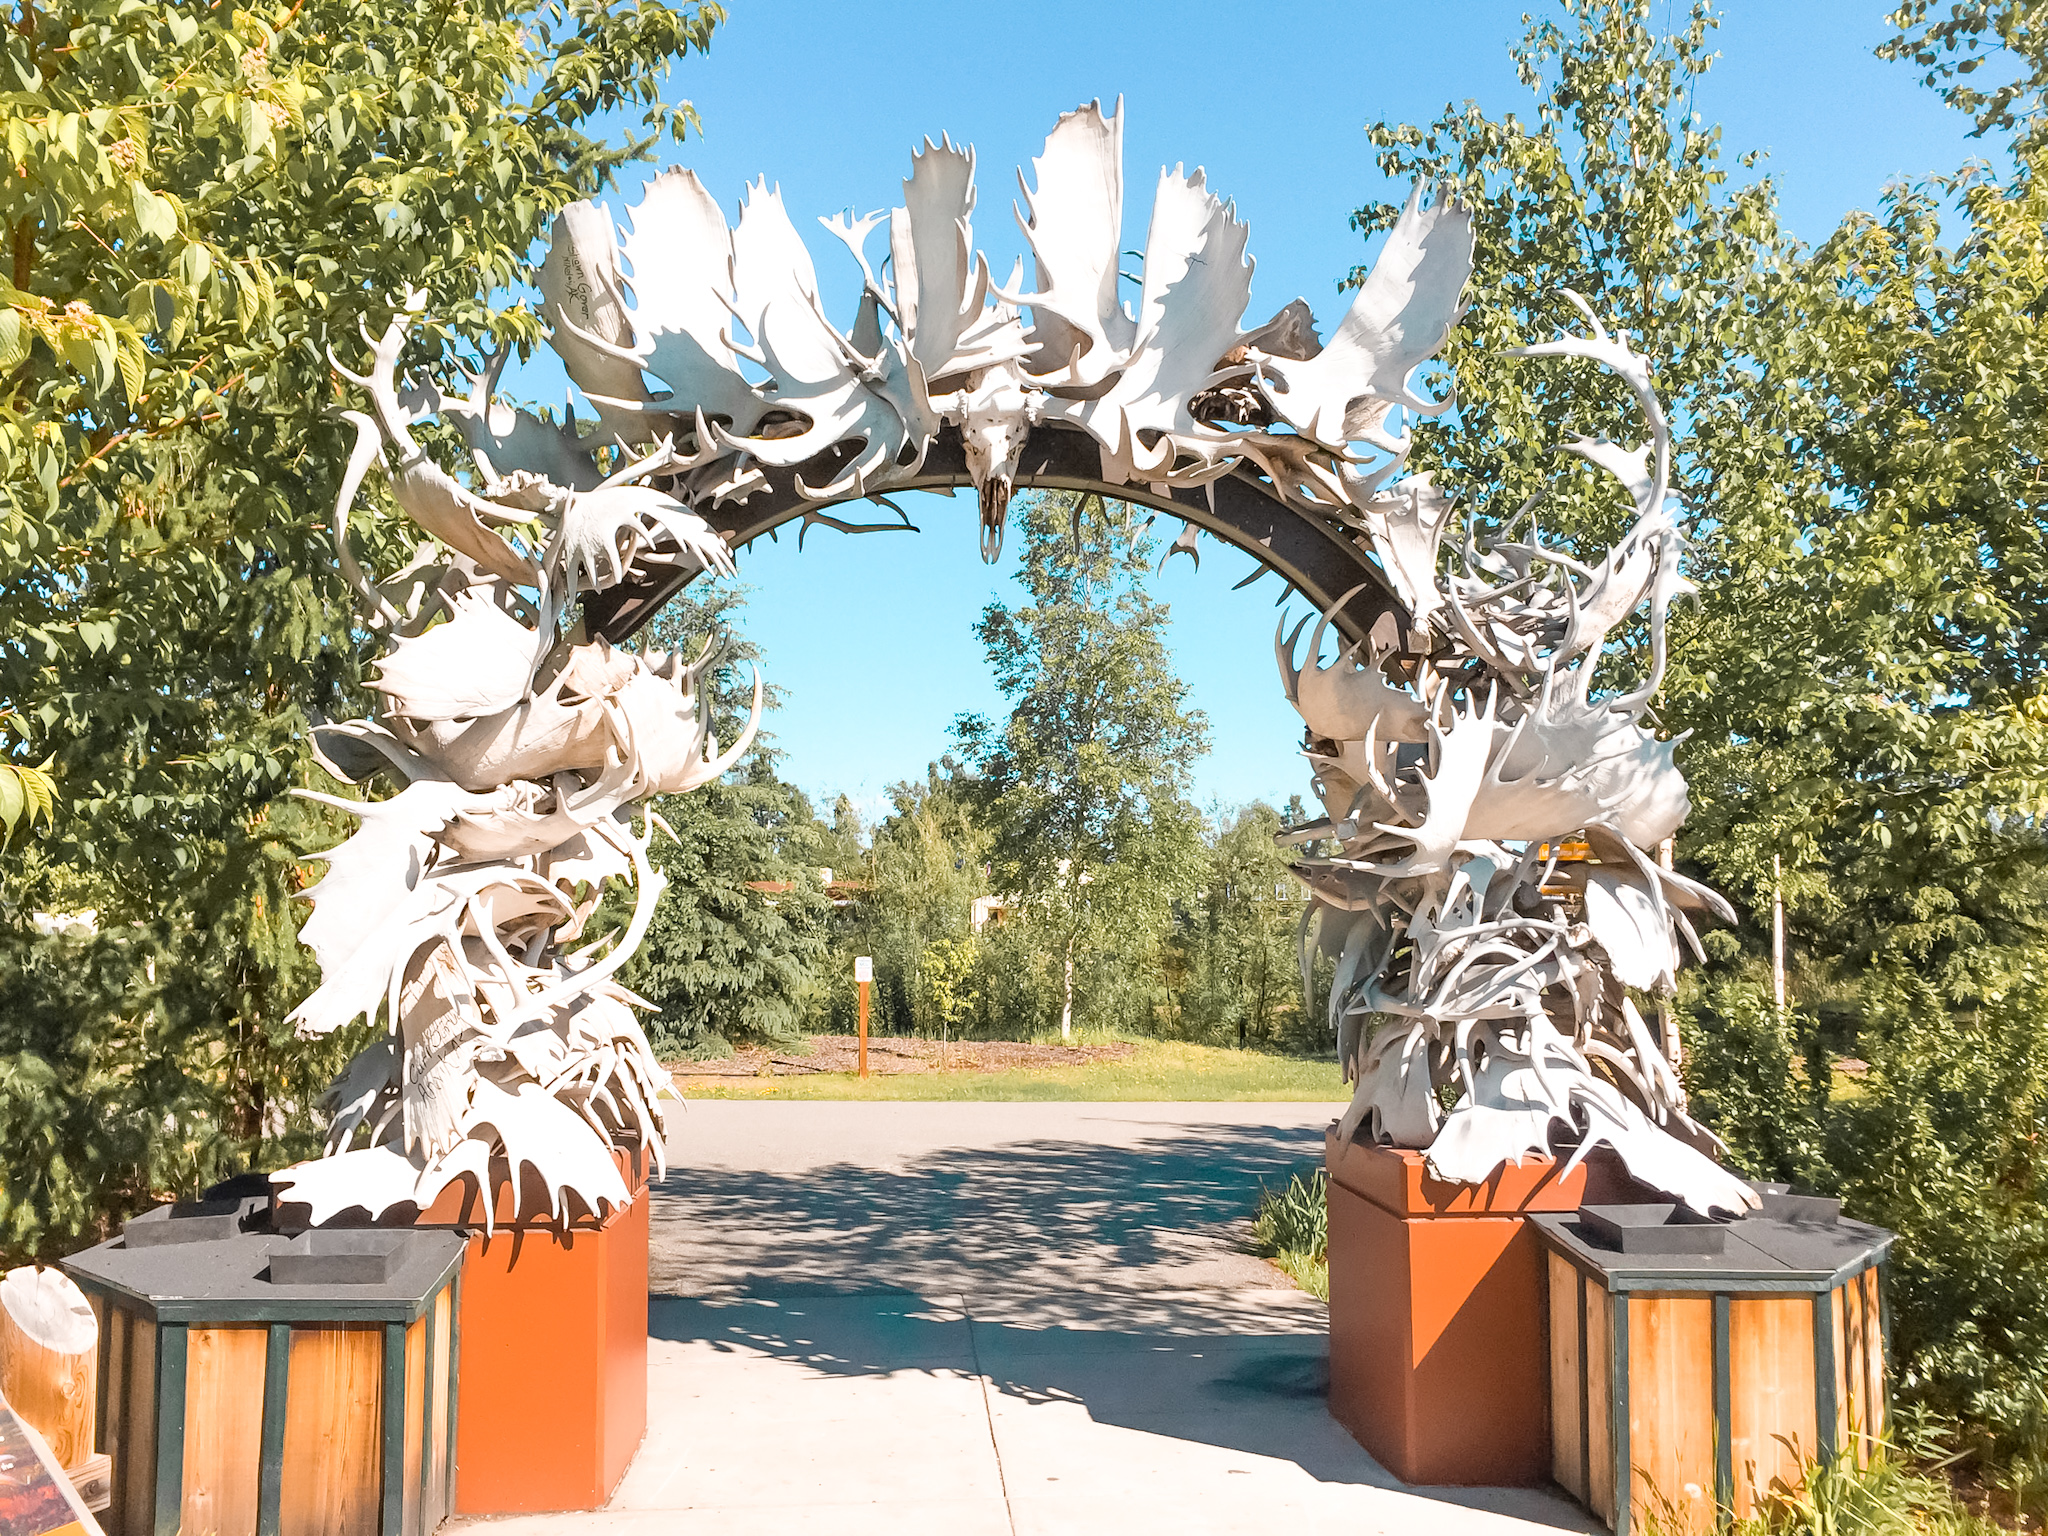 A road trip through Alaska! Spend a relaxed day in Fairbanks and explore Chena River walk, one of the best things to do in Fairbanks!